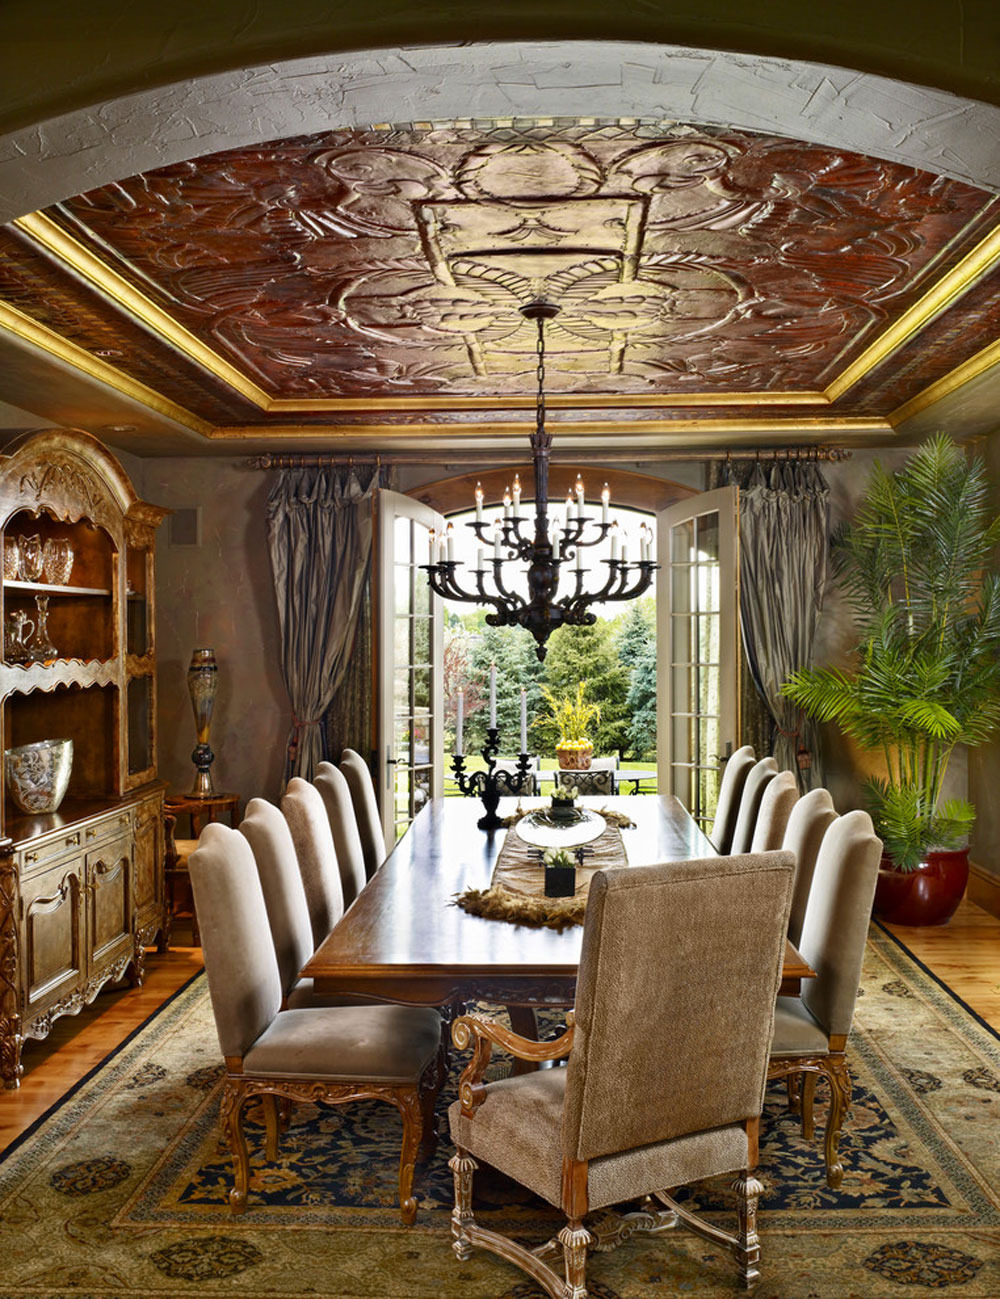 Beautiful Homes Interior Pictures Awesome Beautiful Houses Interior Design Tips for Small or Big Homes